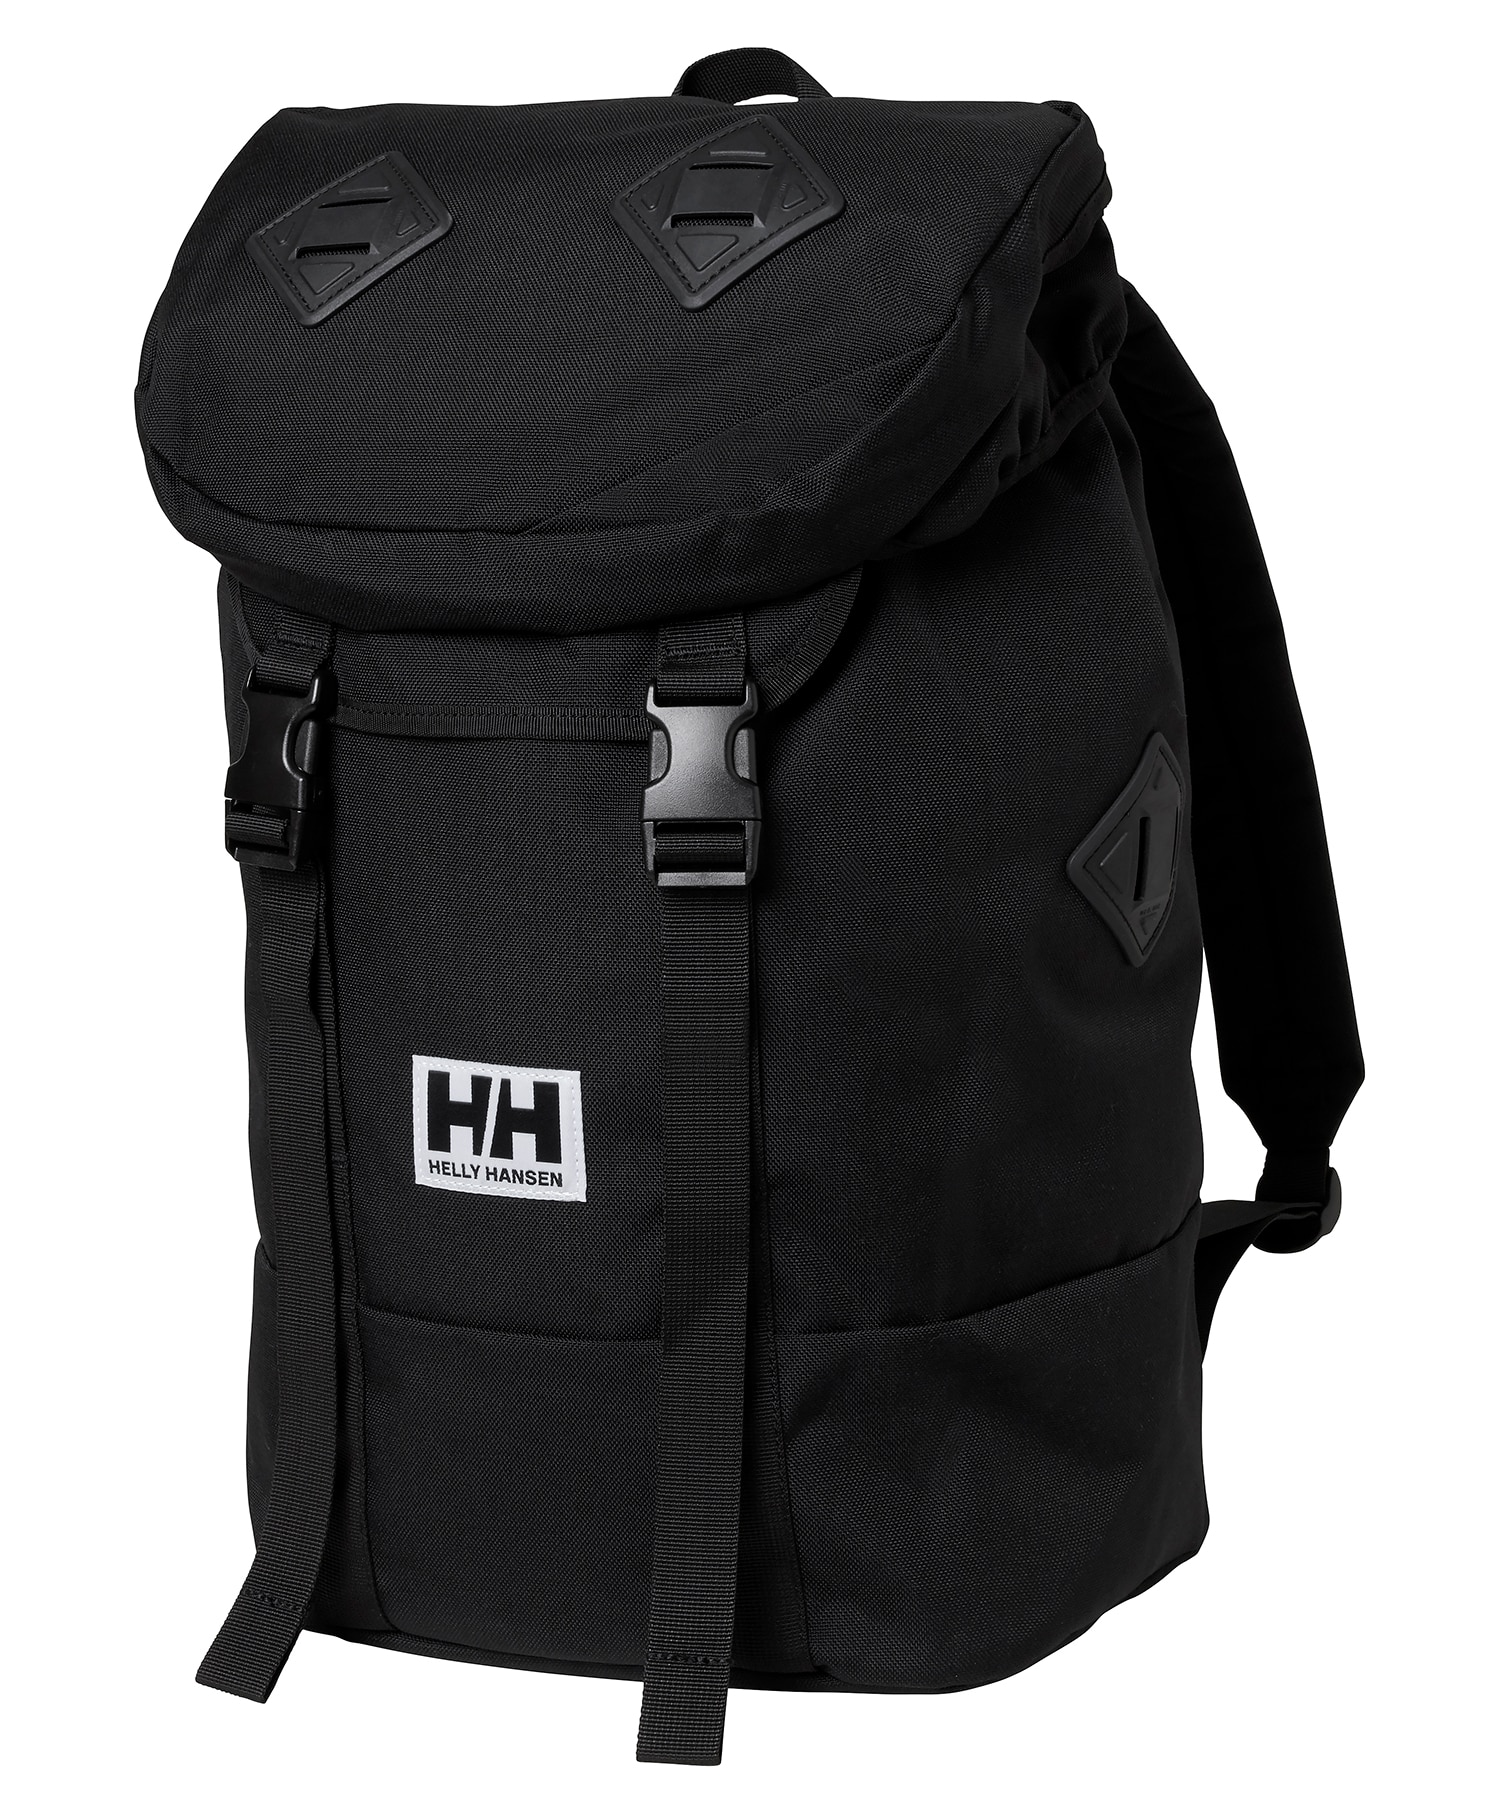 Helly Hansen Heritage Backpack V1